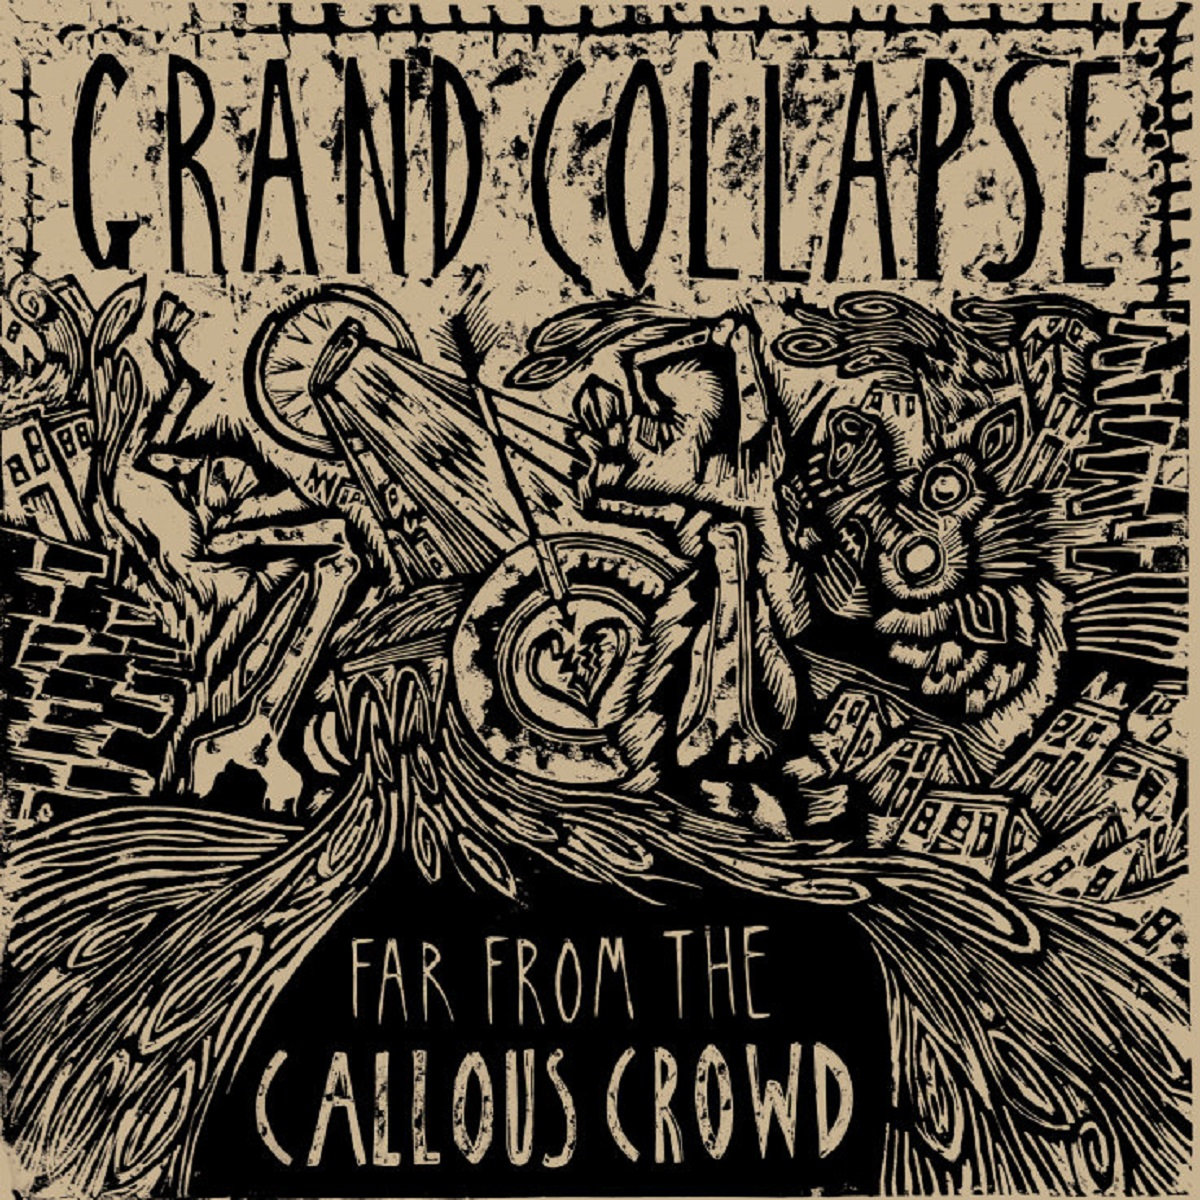 Far From The Callous Crowd | GRAND COLLAPSE